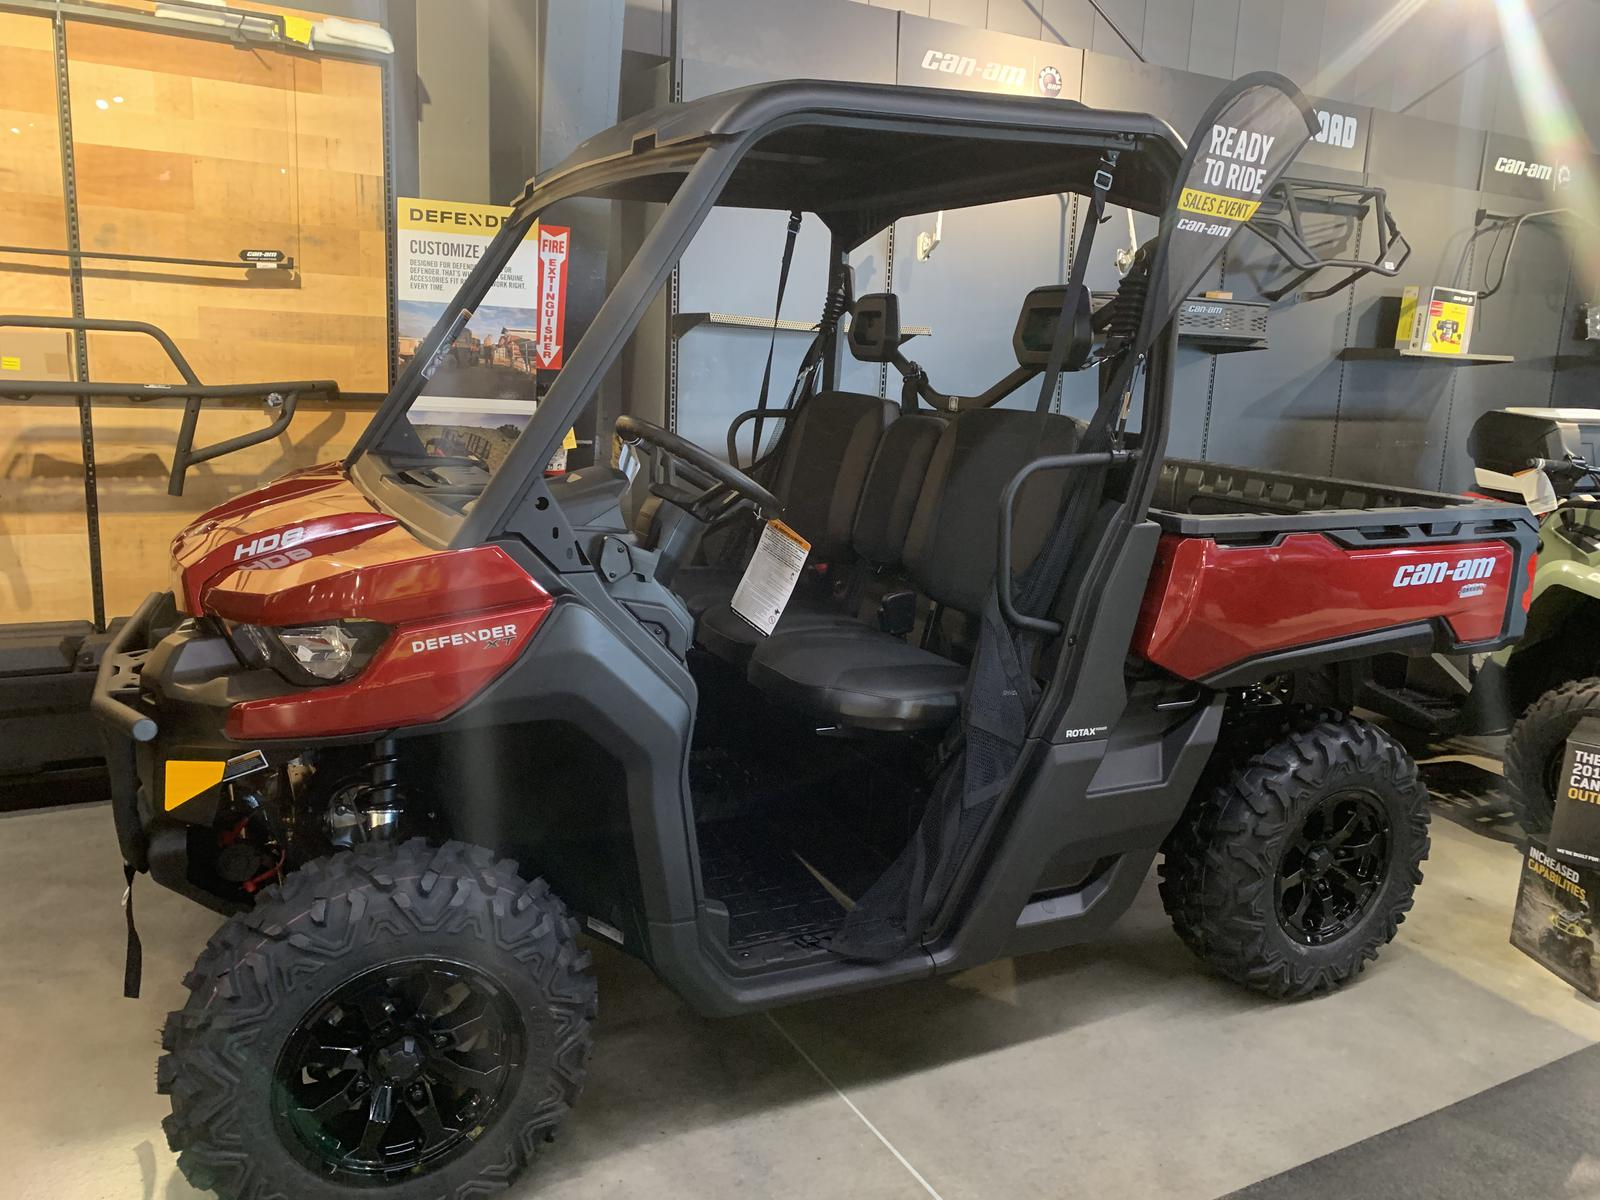 Inventory from Can-Am Johnny K's Powersports